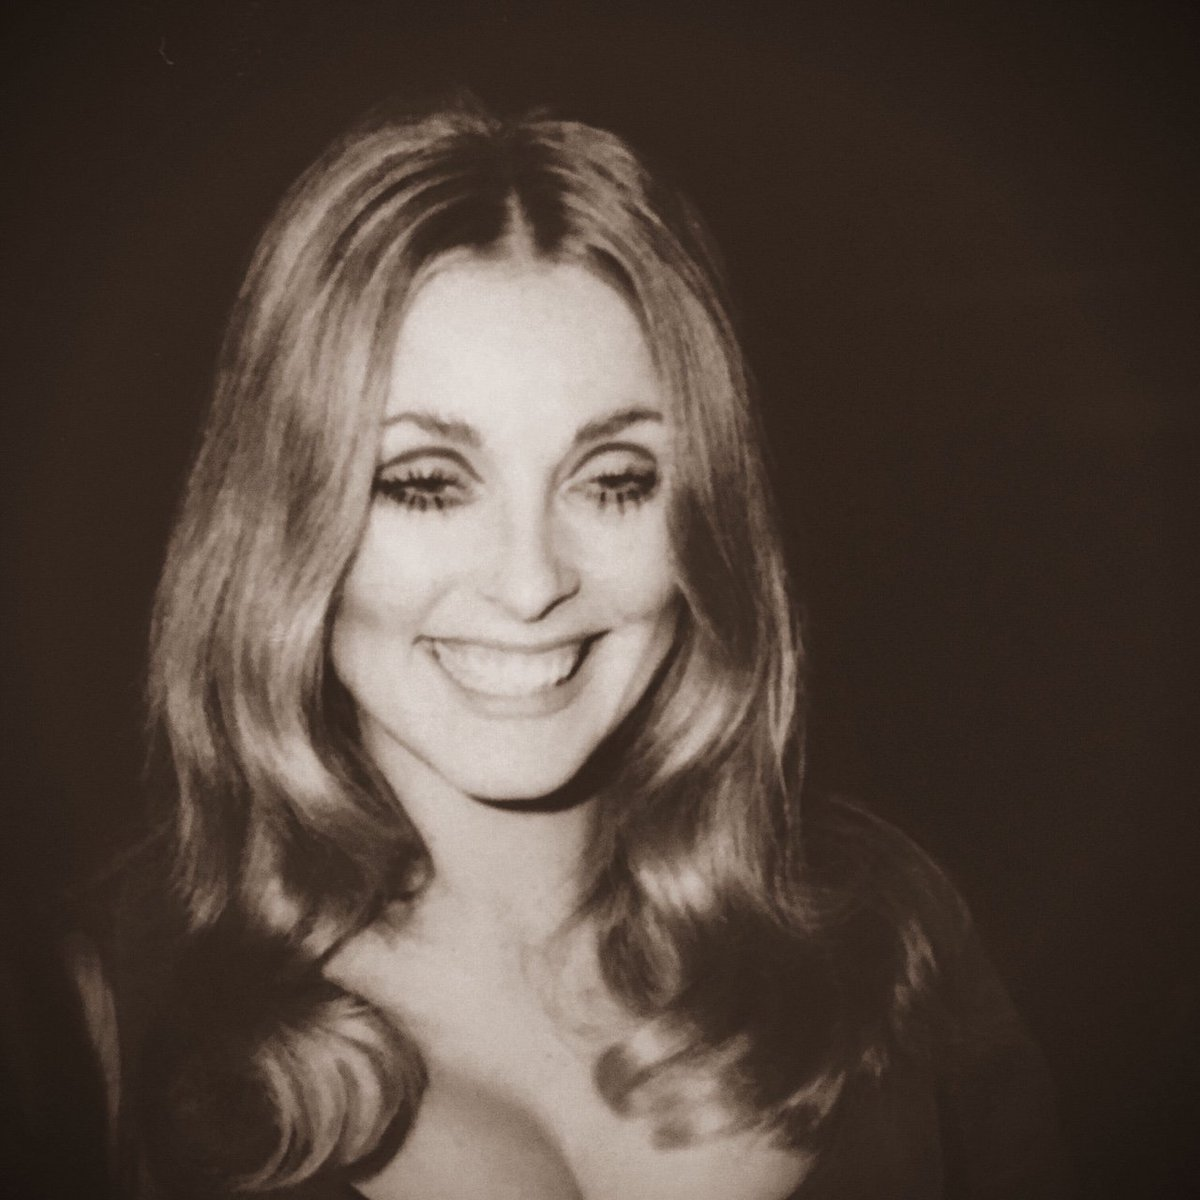 #SharonTate at the 1968 #GoldenGlobes <br>http://pic.twitter.com/YylBfJOFq0